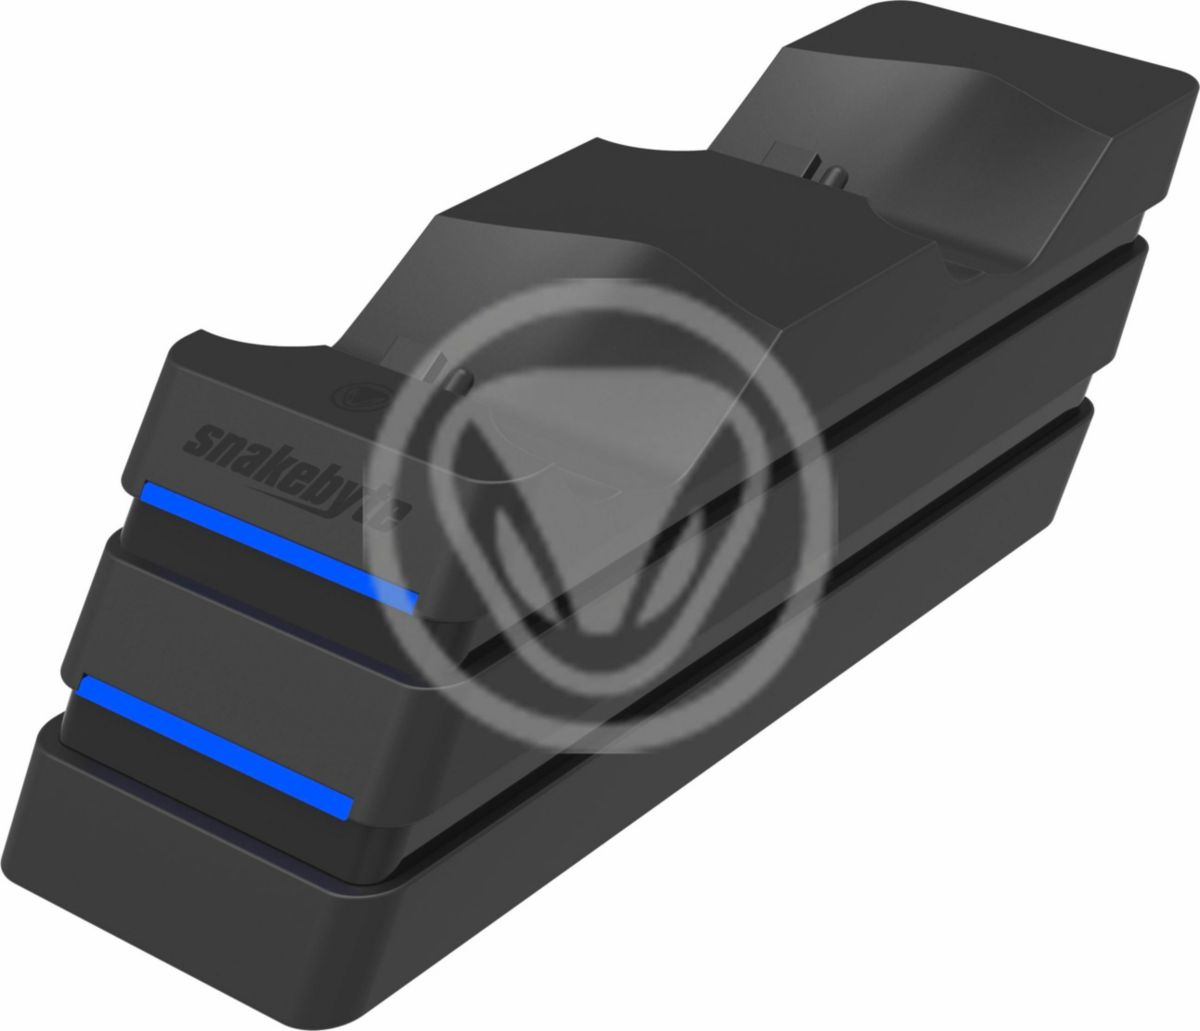 Snakebyte PS4 TWIN:CHARGE 4 Ladegerät